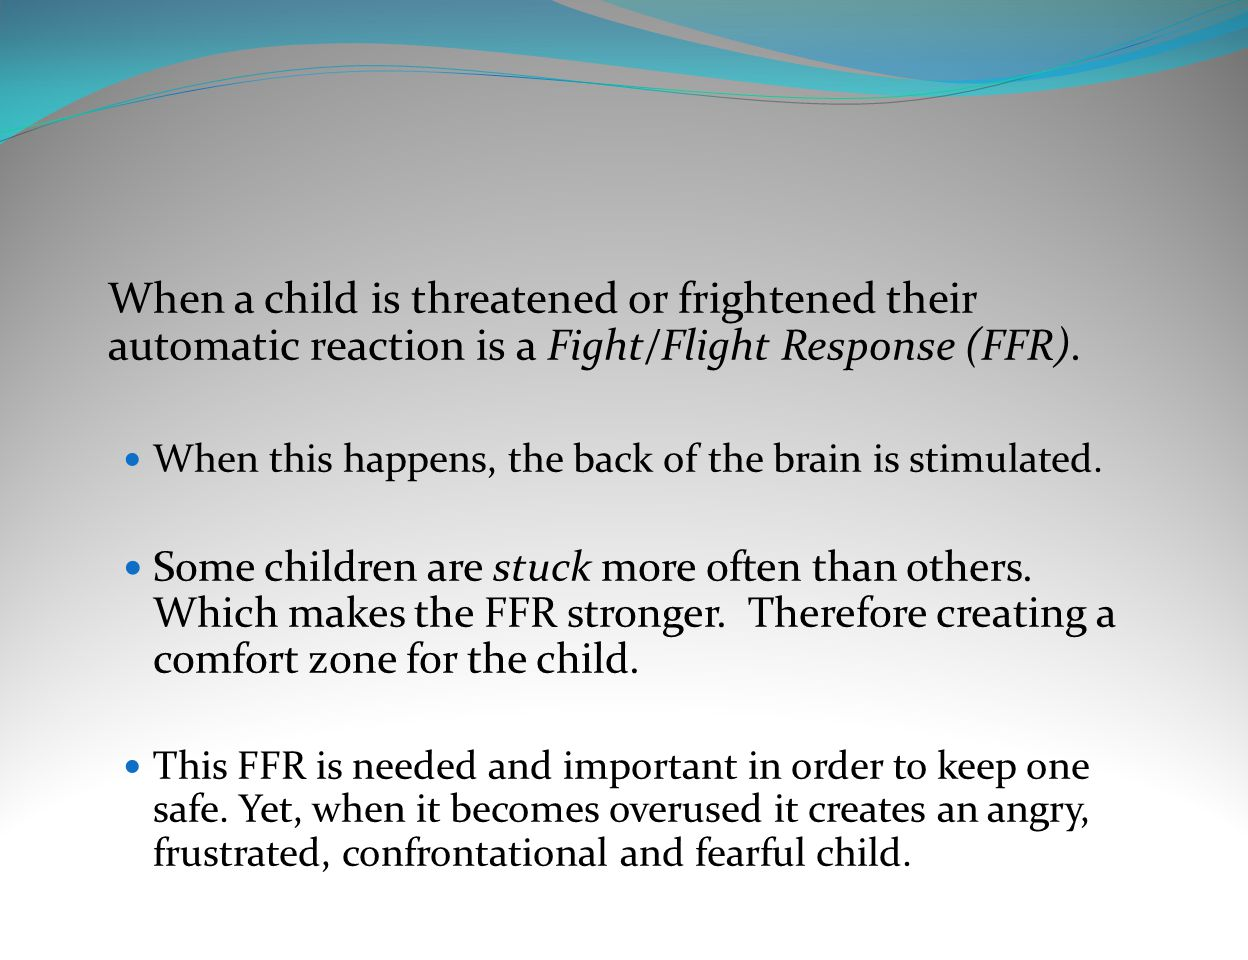 When a child is threatened or frightened their automatic reaction is a Fight/Flight Response (FFR).